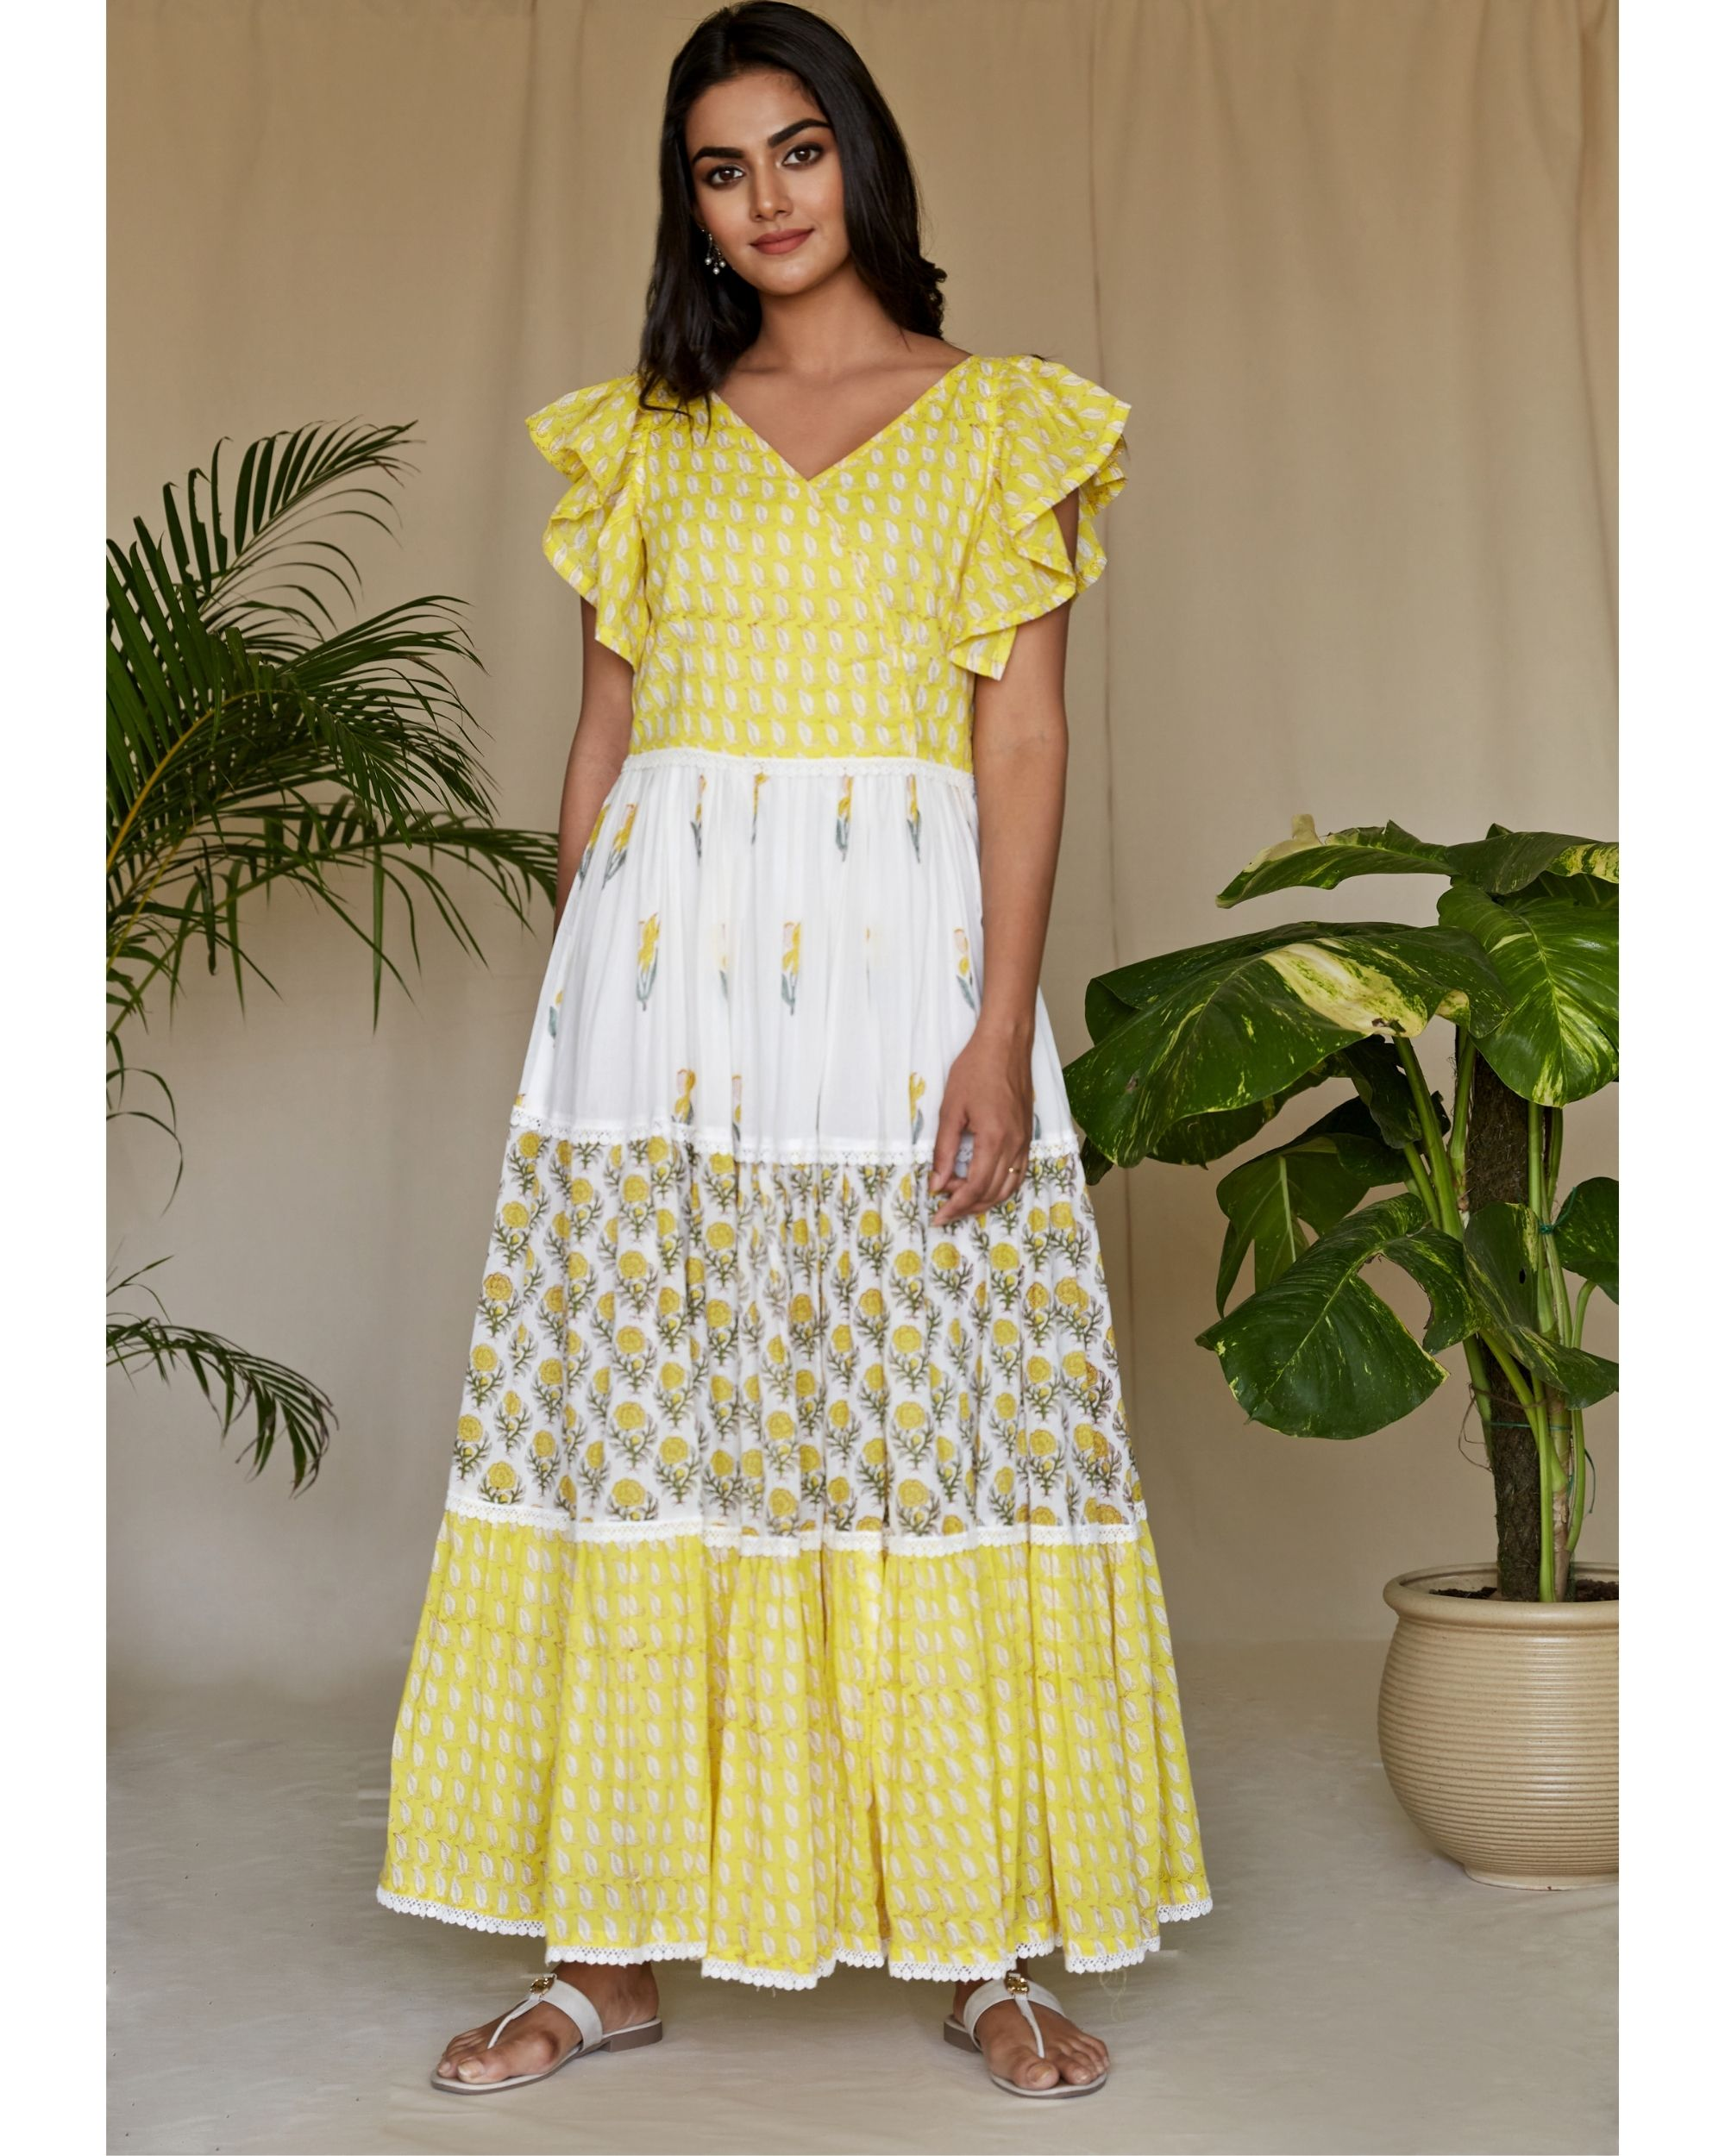 Lemon yellow floral printed tiered maxi dress